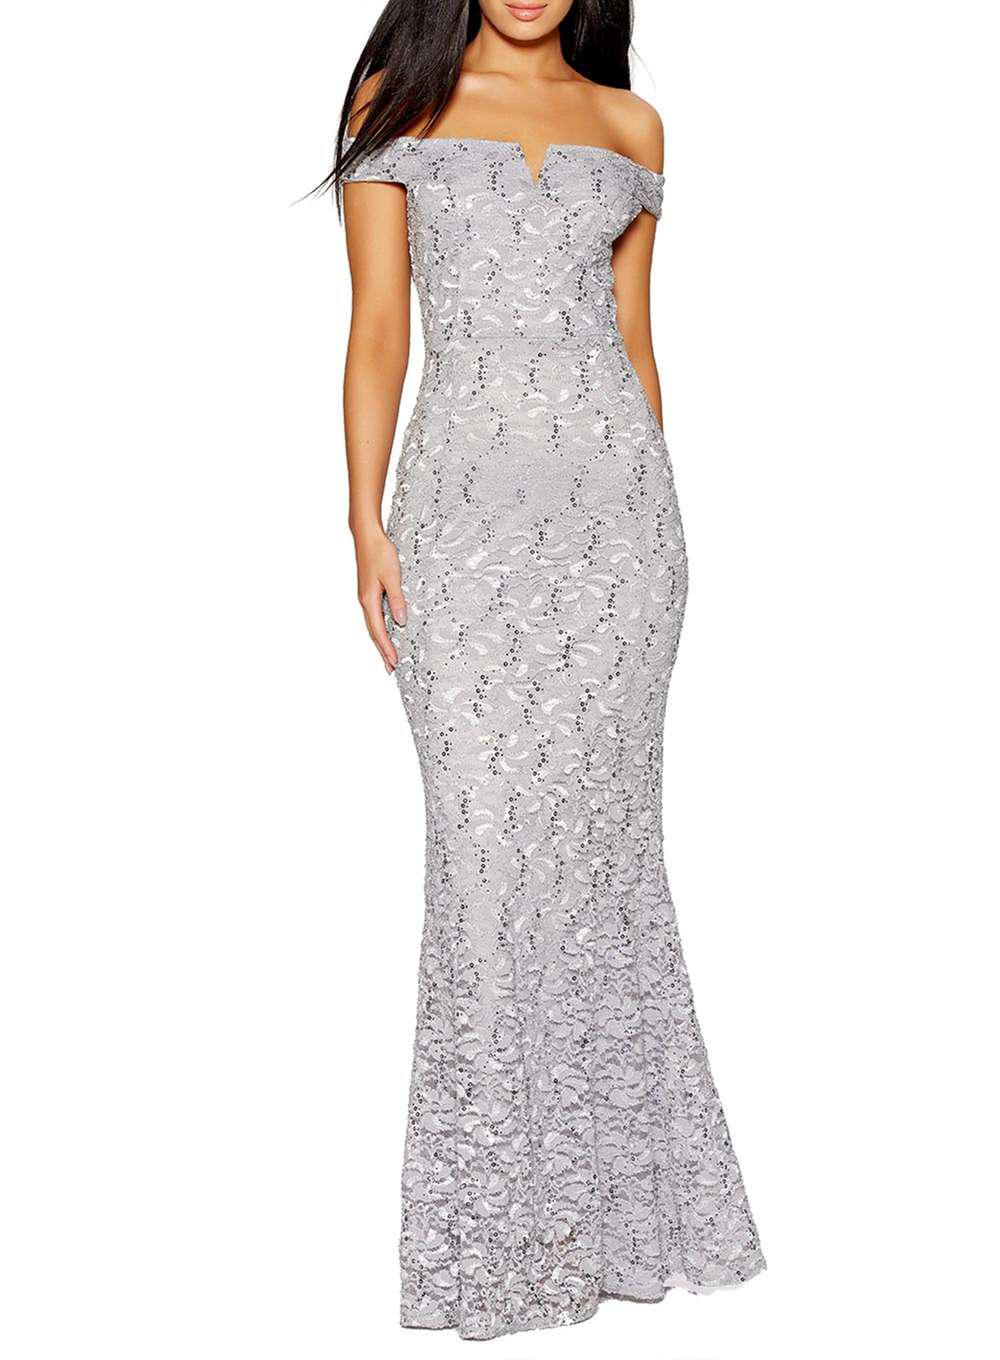 Dorothy Perkins Quiz Silver Sequin Fishtail